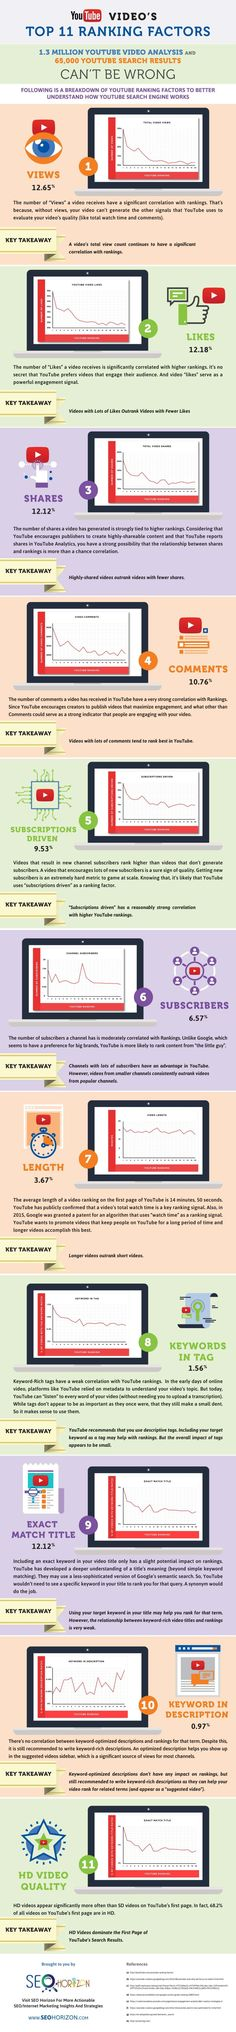 Youtube Video Seo: 11 Little Known Youtube Videos Ranking Factors - #infographic